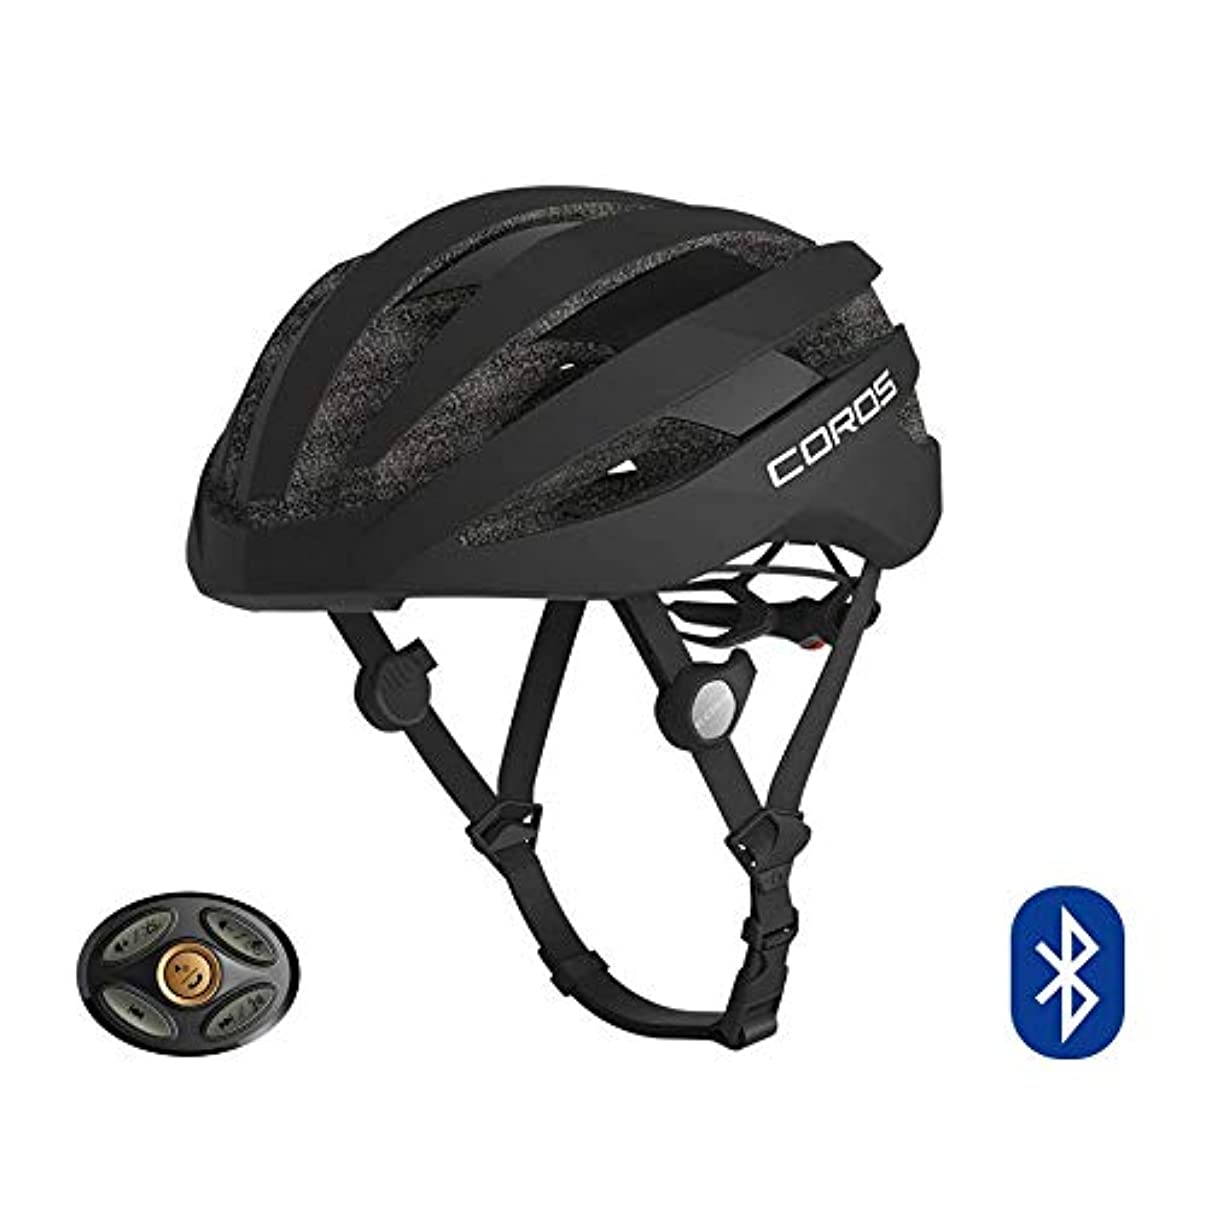 Coros SafeSound Road Smart Cycling Helmet with Ear Opening Sound System, SOS Emergency Alert, and LED Tail Light   Bluetooth for Music and Phone Calls   Smart Remote   Lightweight